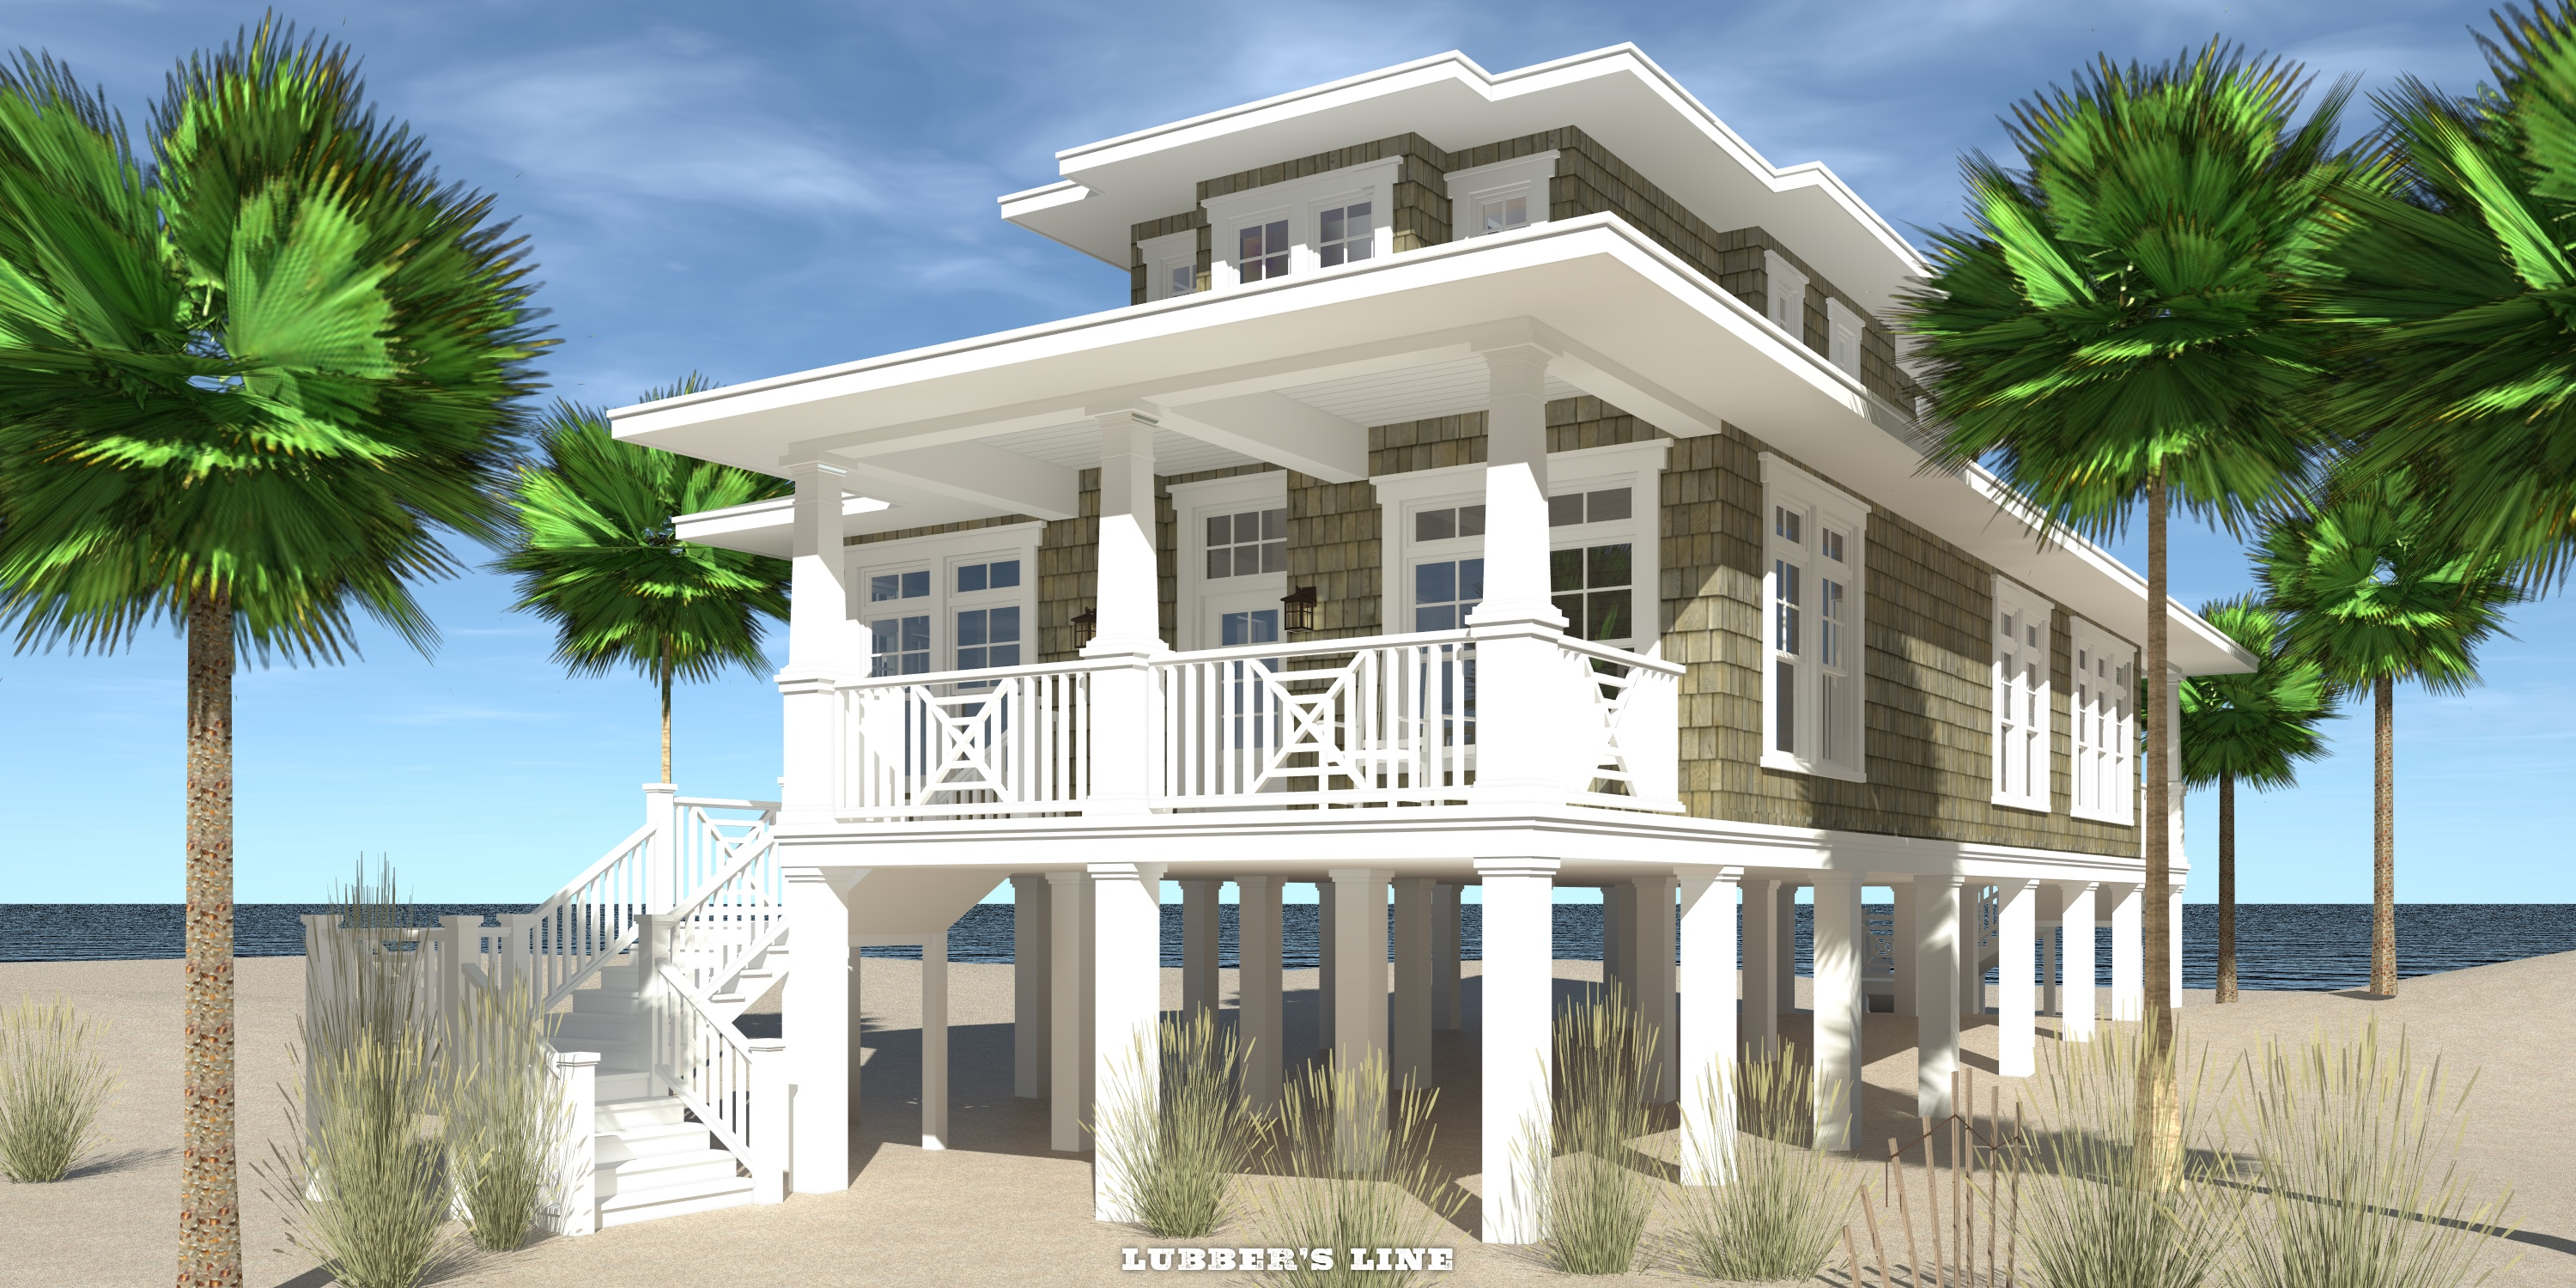 Beach house plans with front view for Coastal house plans